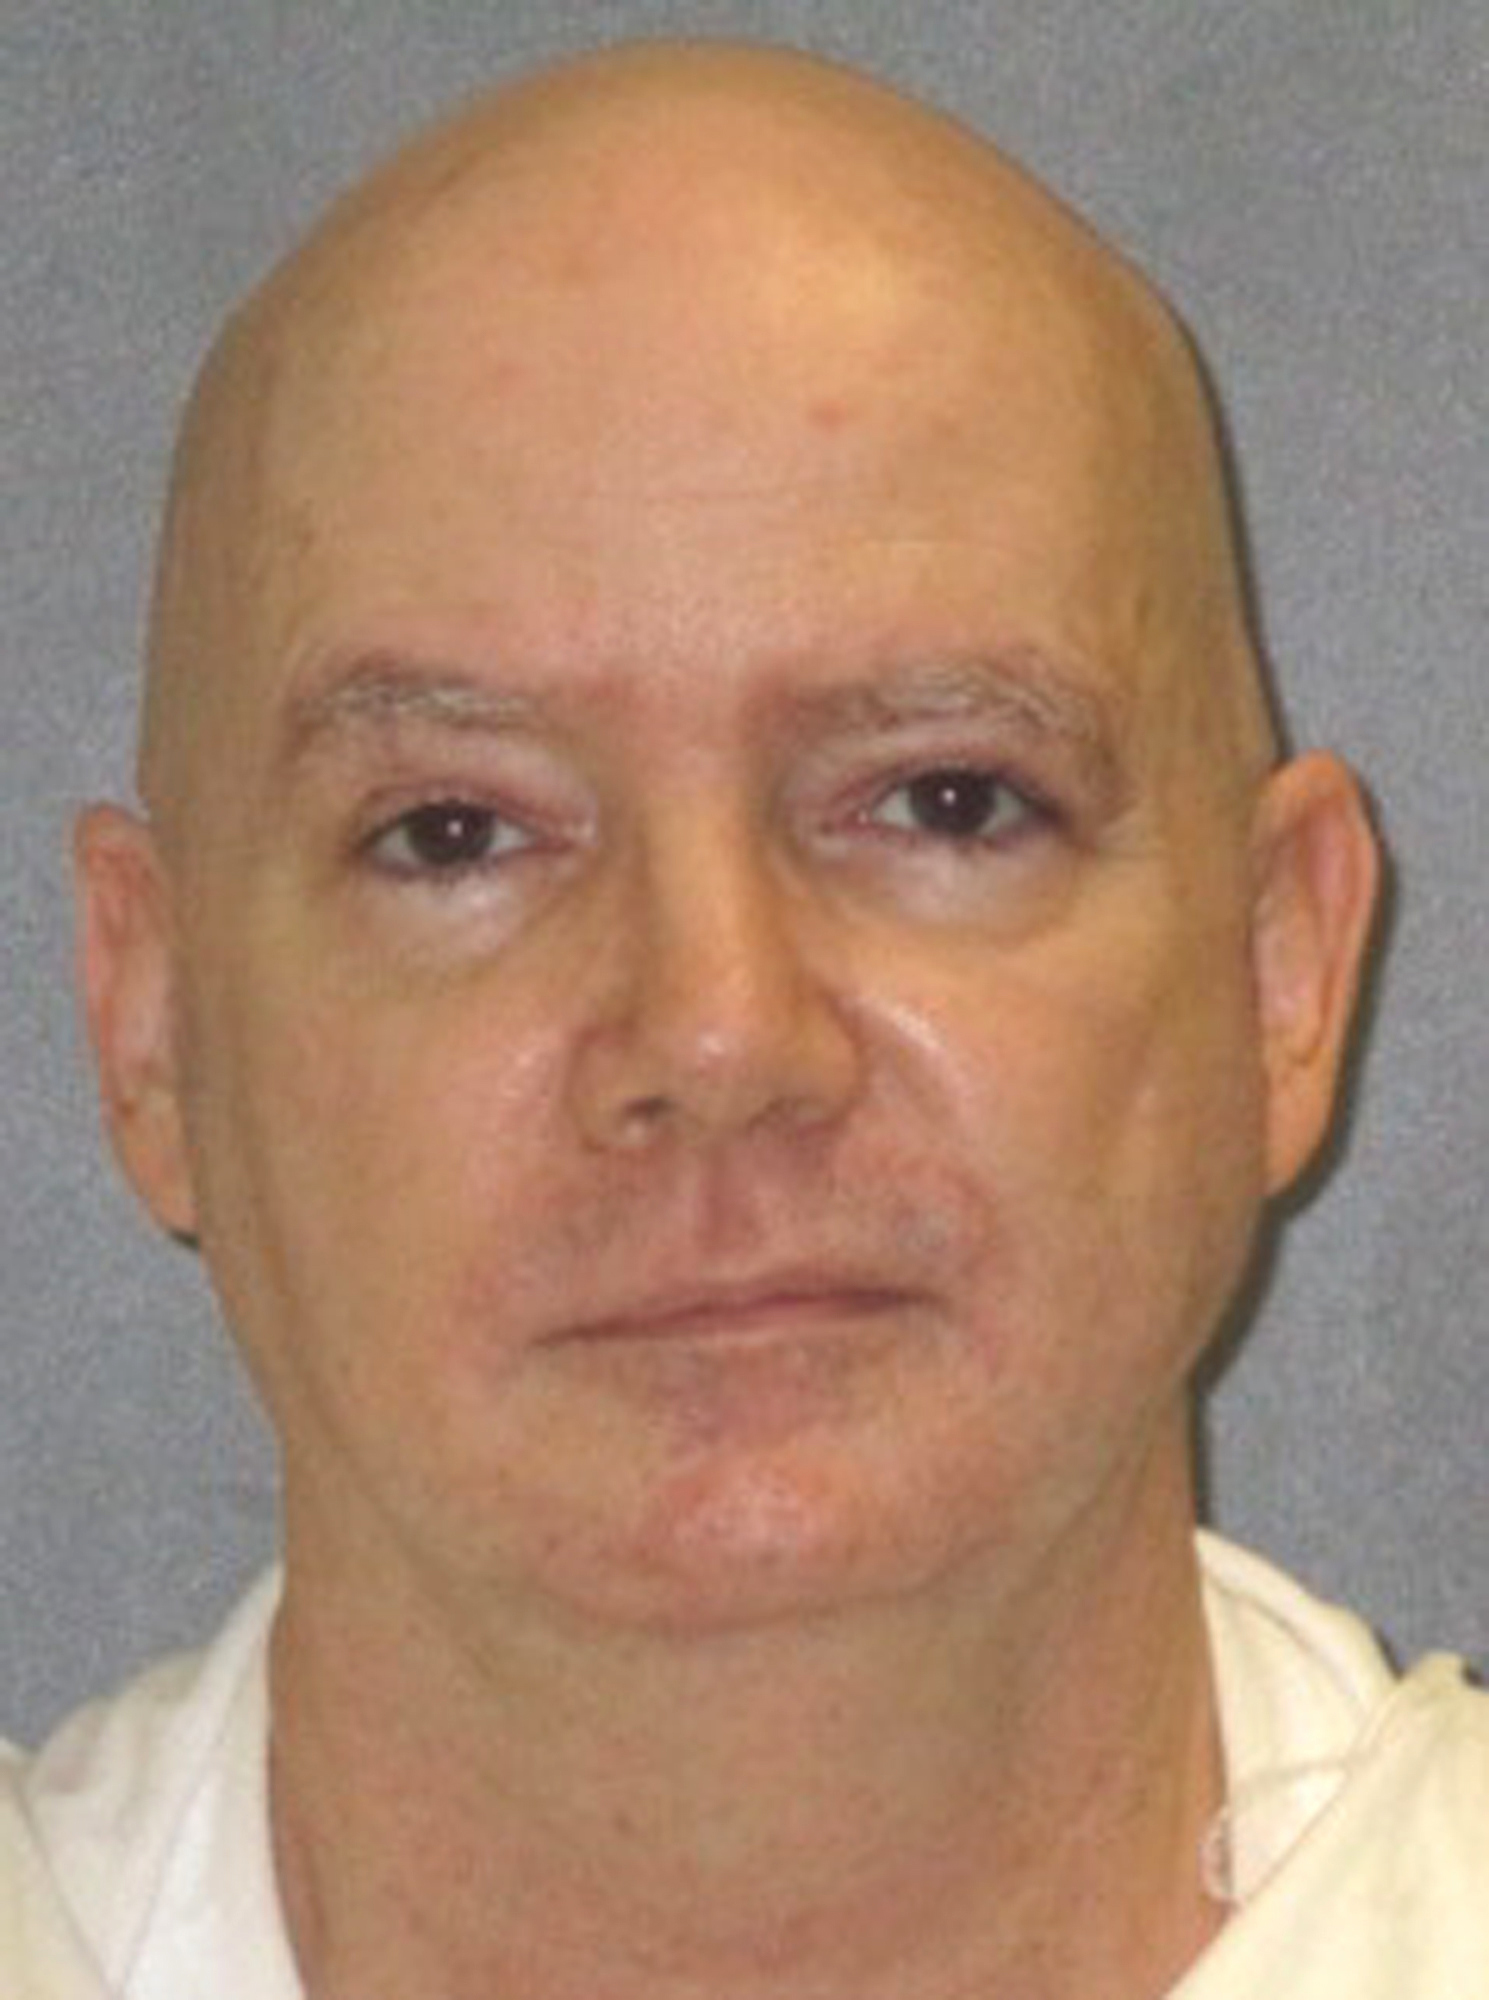 Sister of notorious Houston serial killer: 'He should be killed